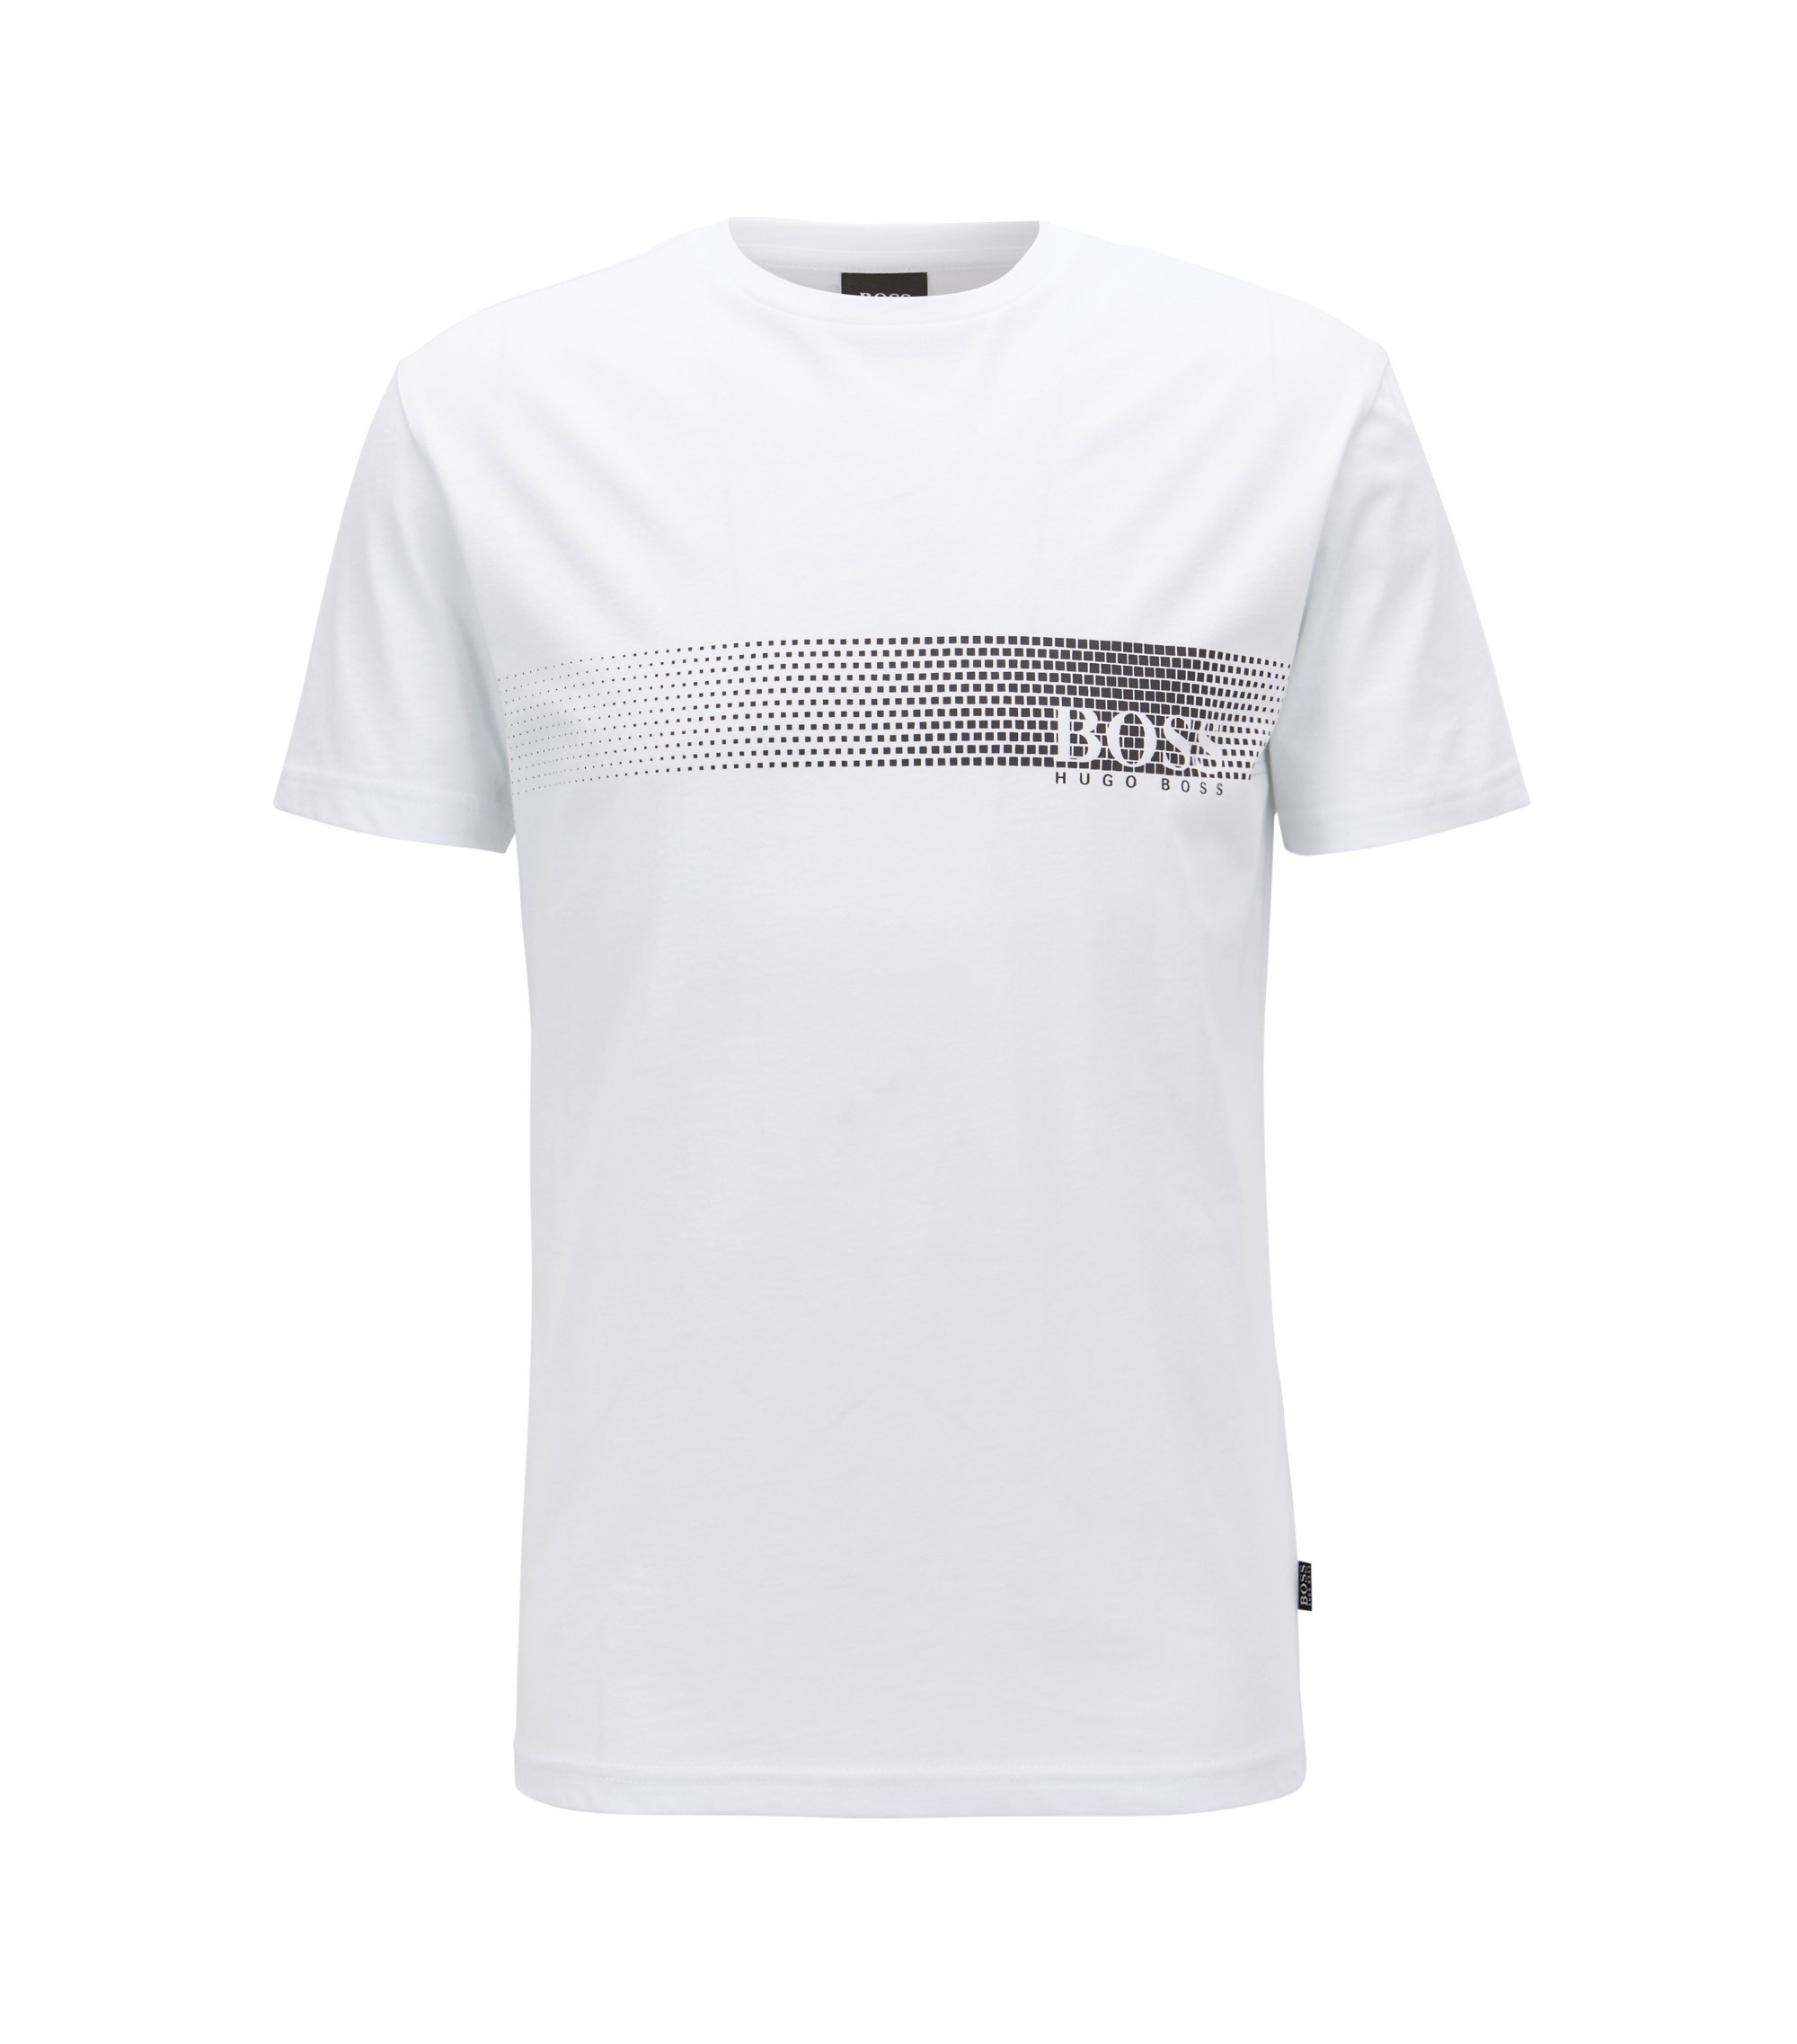 Sunsafe logo T-shirt in cotton, Open White